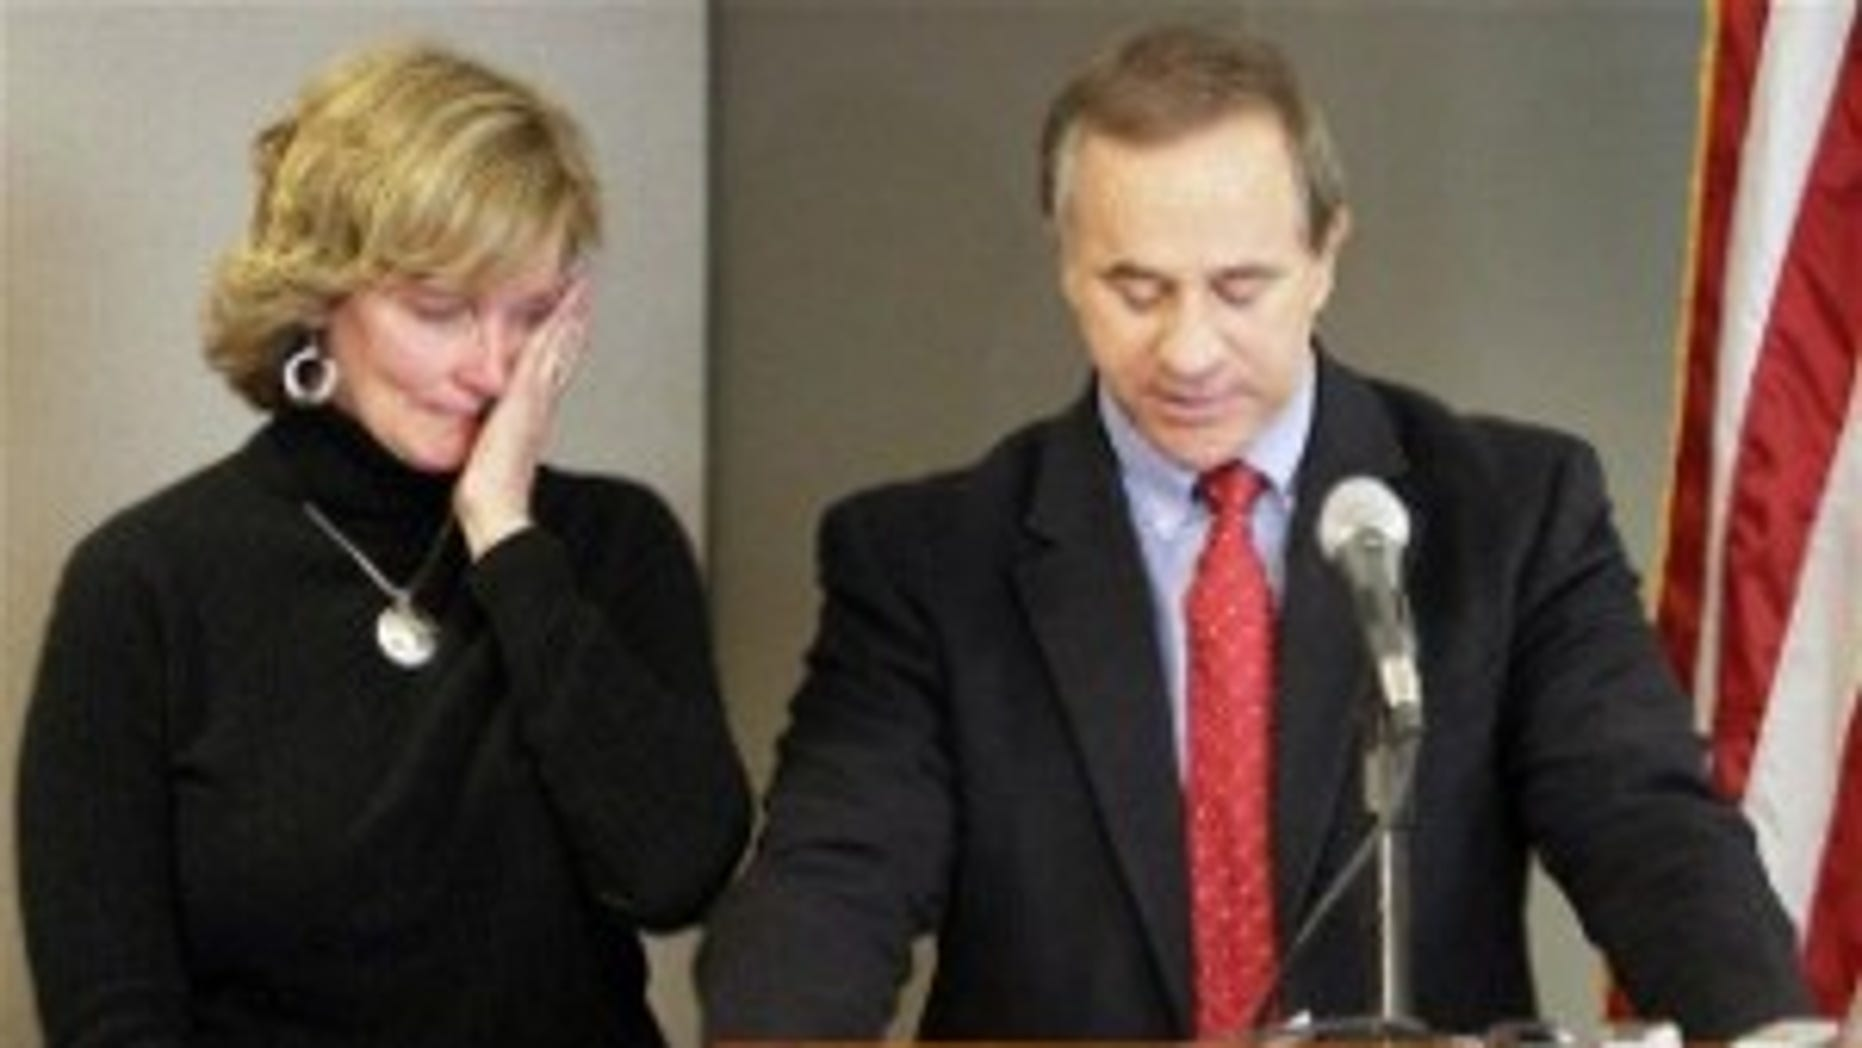 Rep. Steve Buyer (R-IN), right, announces he will not seek re-election because his wife, Joni, left, is ill during a news conference in Indianapolis. (AP Photo)